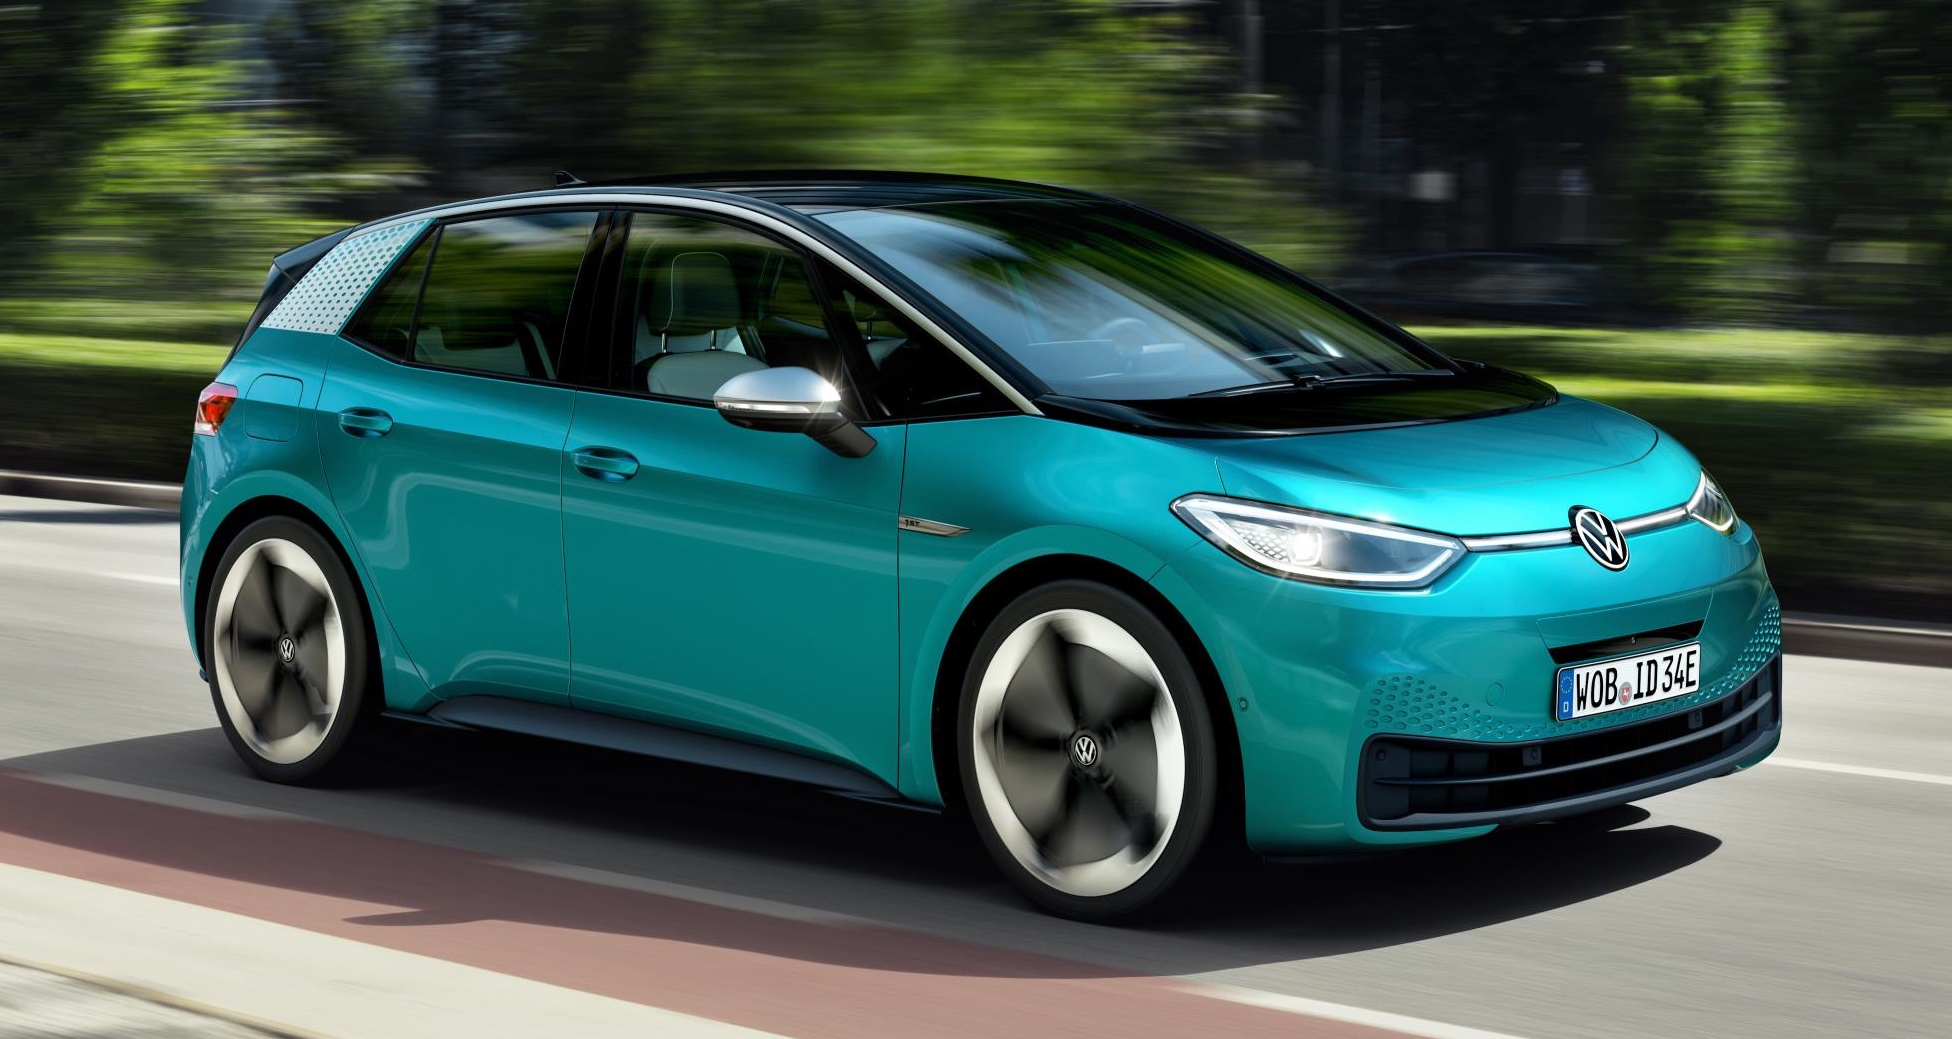 Volkswagen unveils their new all-electric ID.3